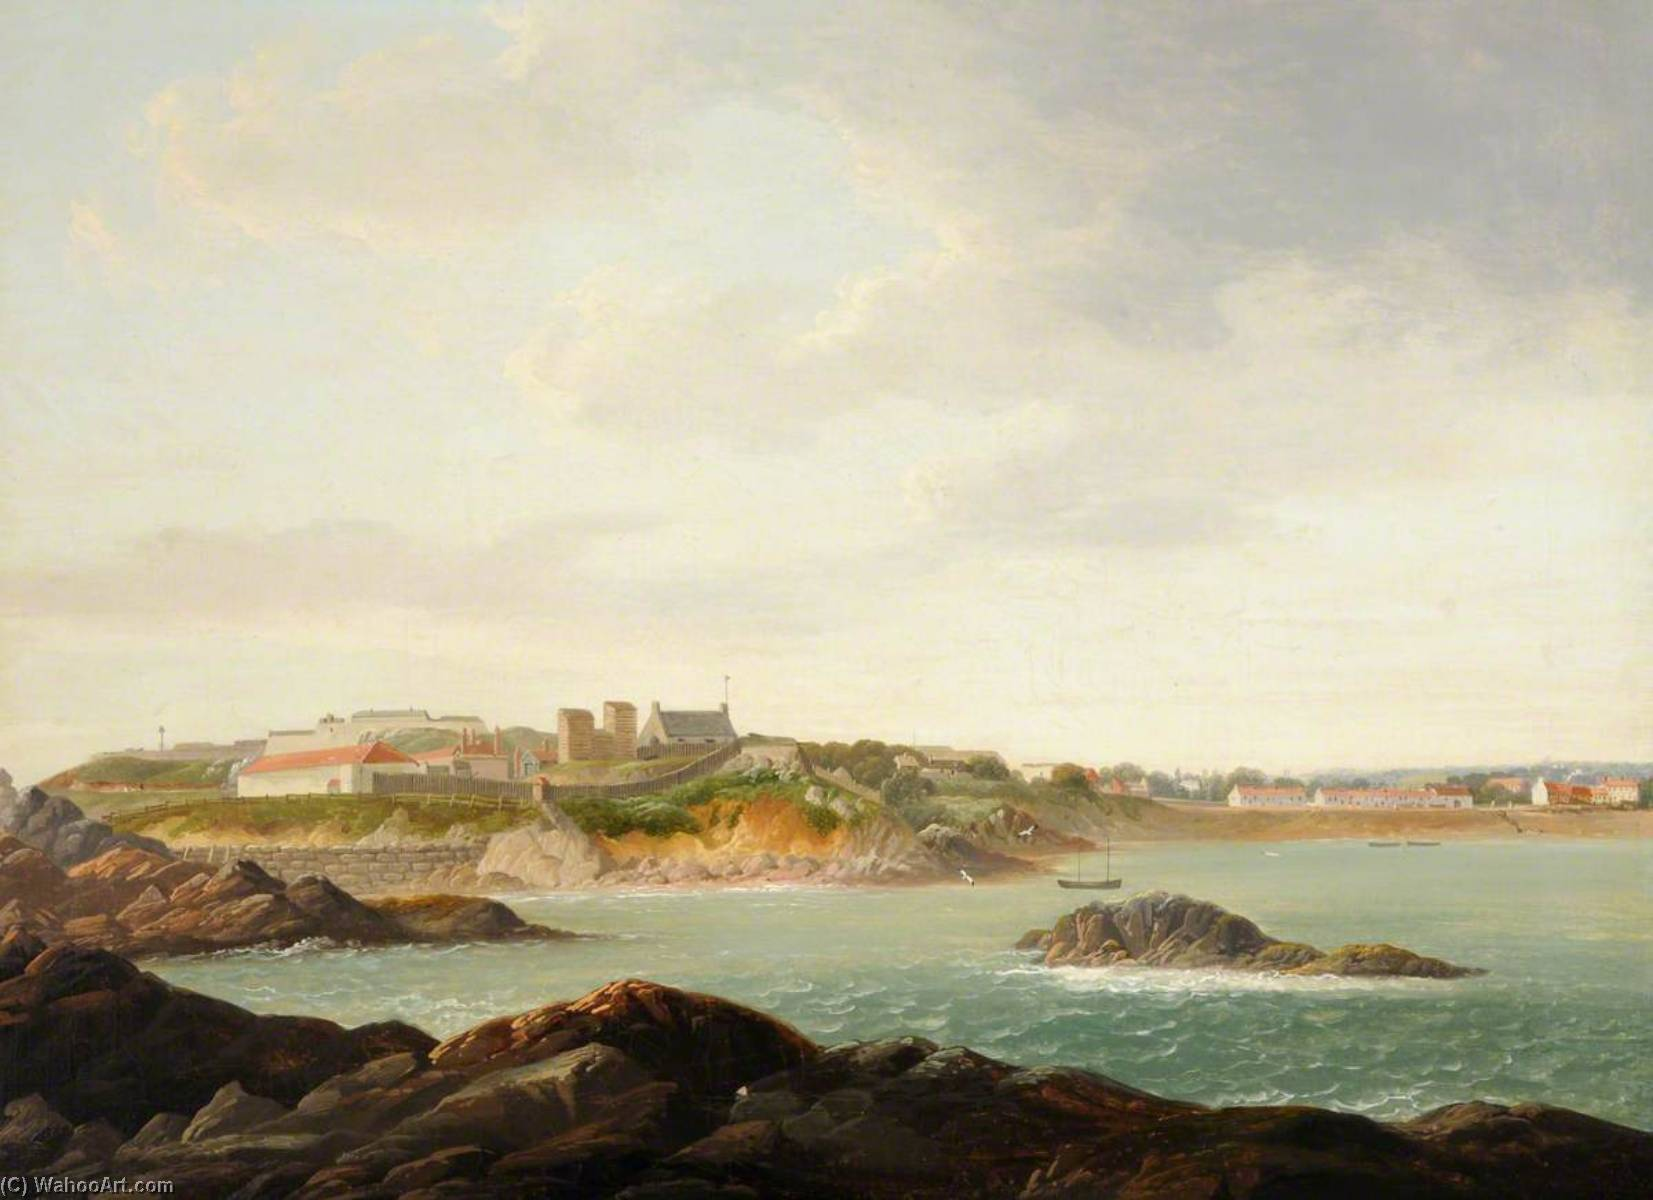 View of St Clement`s, Jersey, 1815 by John Tobias Young | Art Reproduction | WahooArt.com